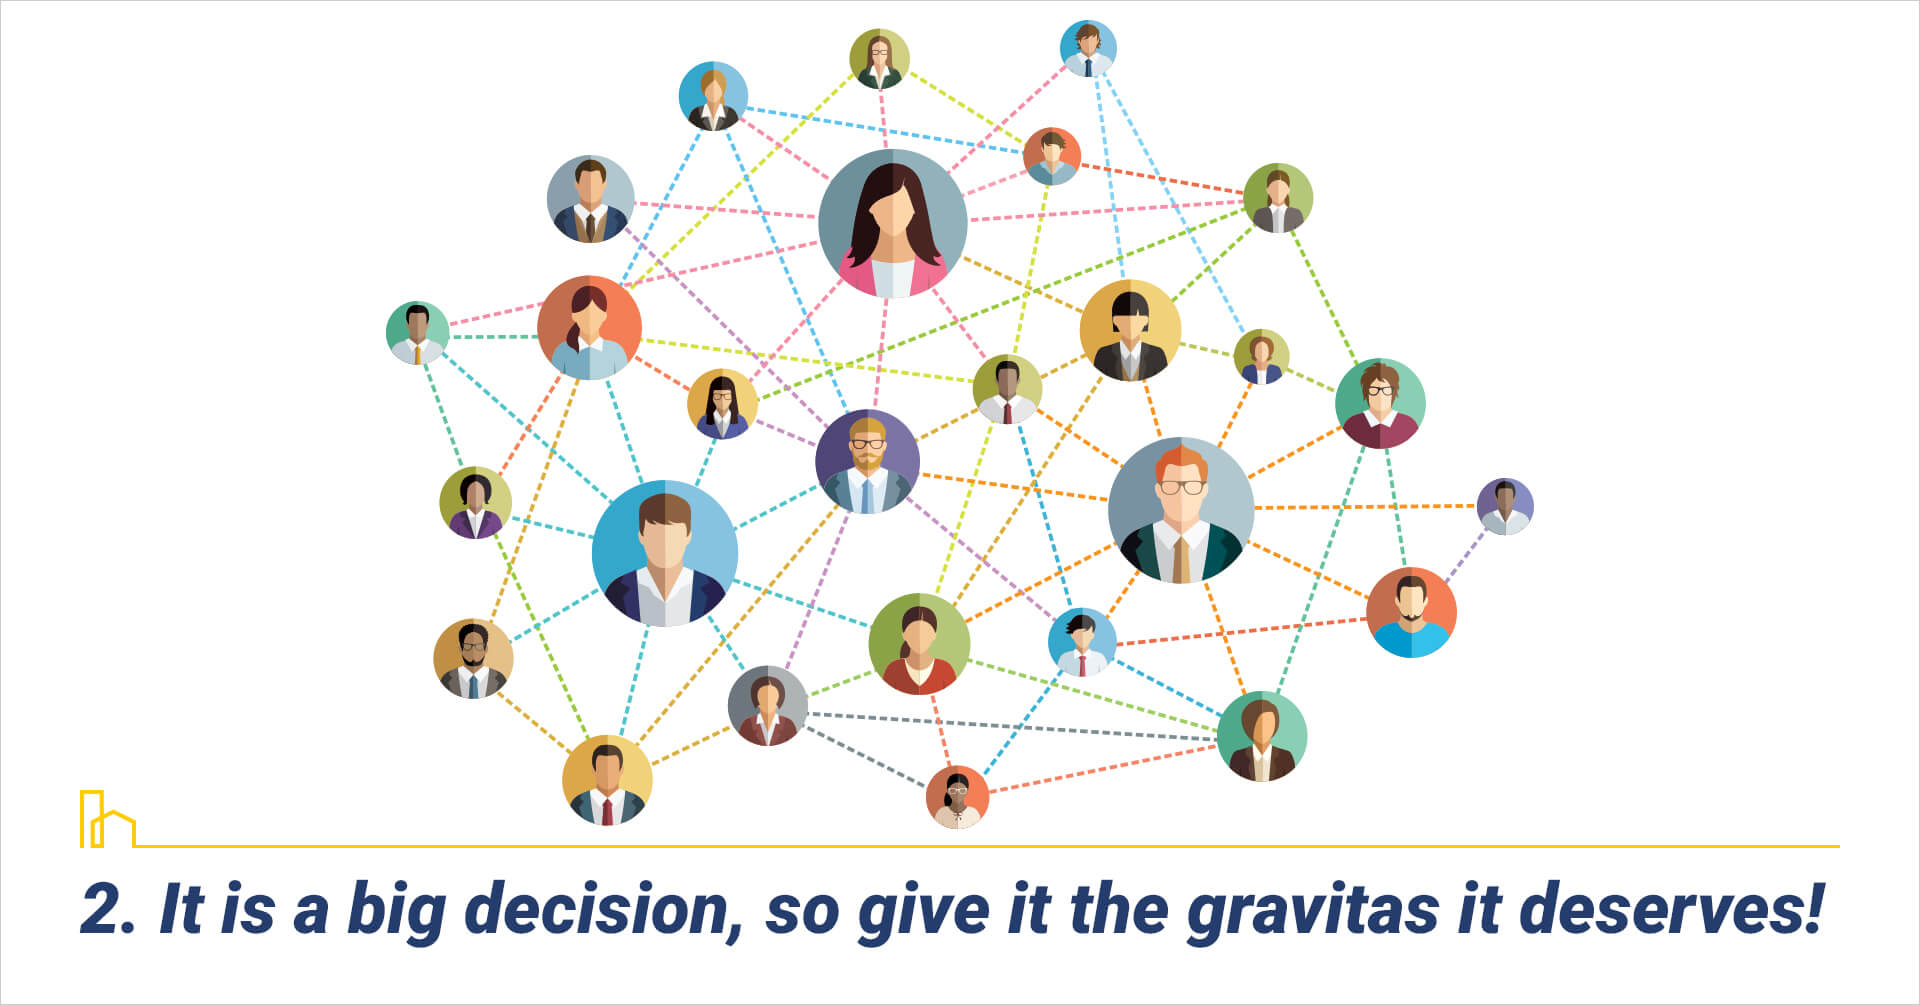 It is a big decision, so give it the gravitas it deserves! Take your time